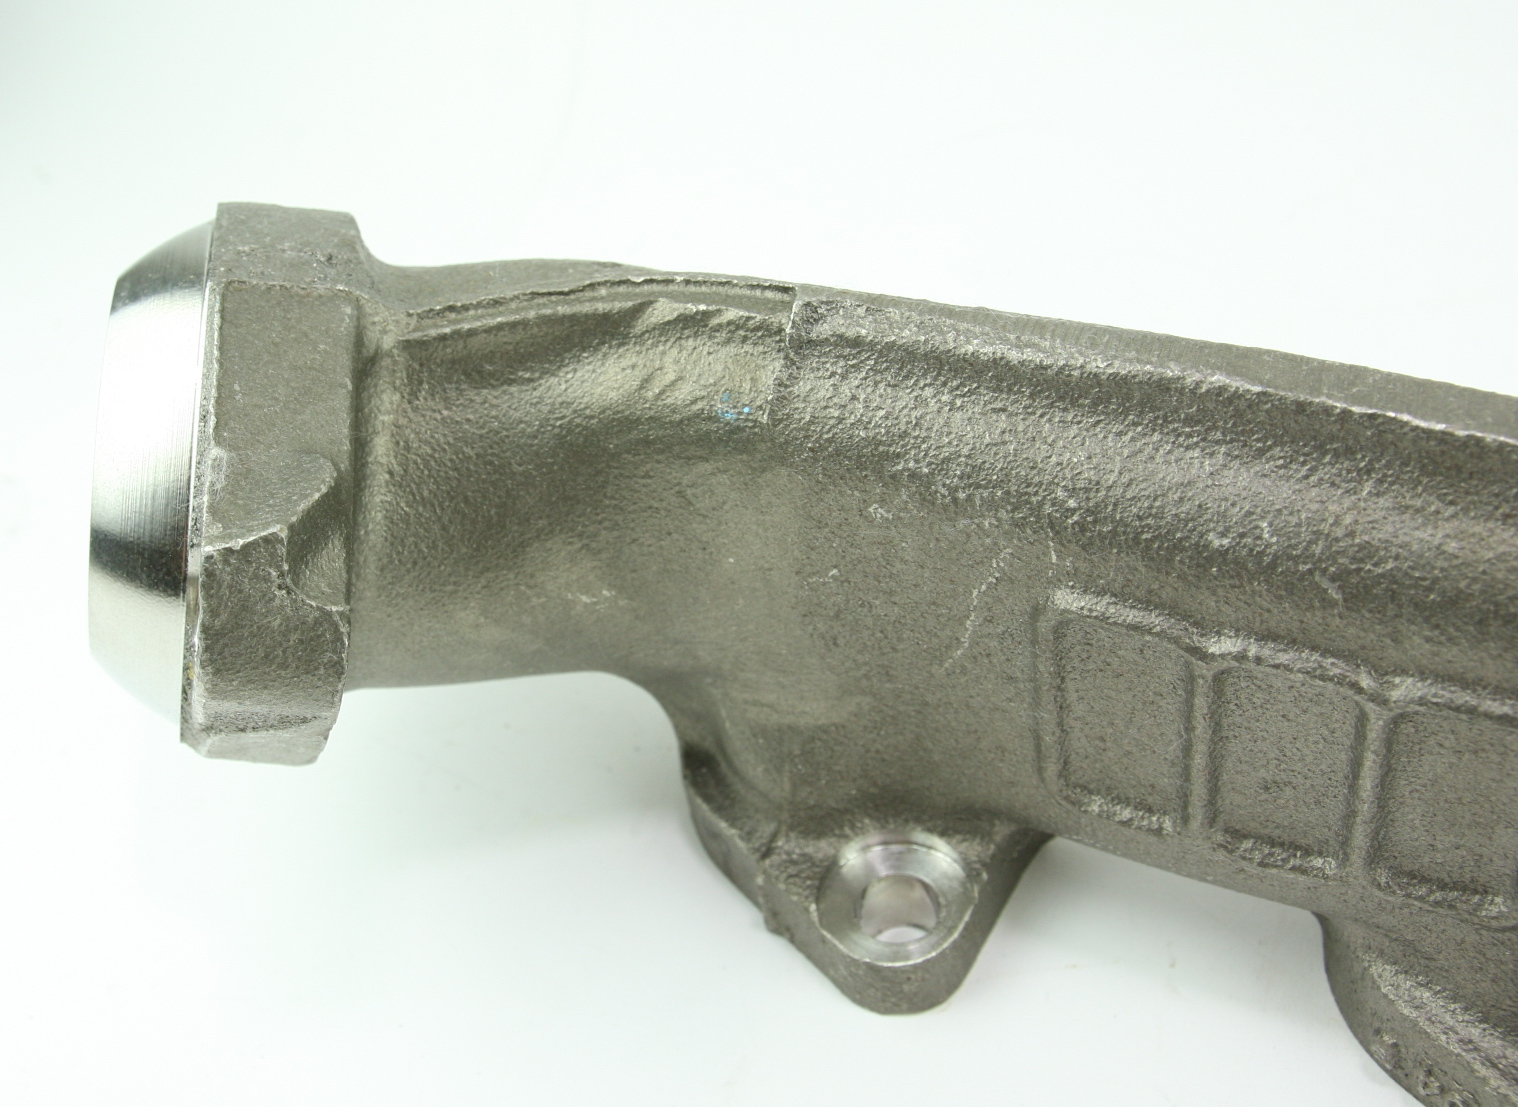 **** New OEM YC2Z9430AA Ford 00-14 Super Duty 6.8L V10 Exhaust Manifold - image 12